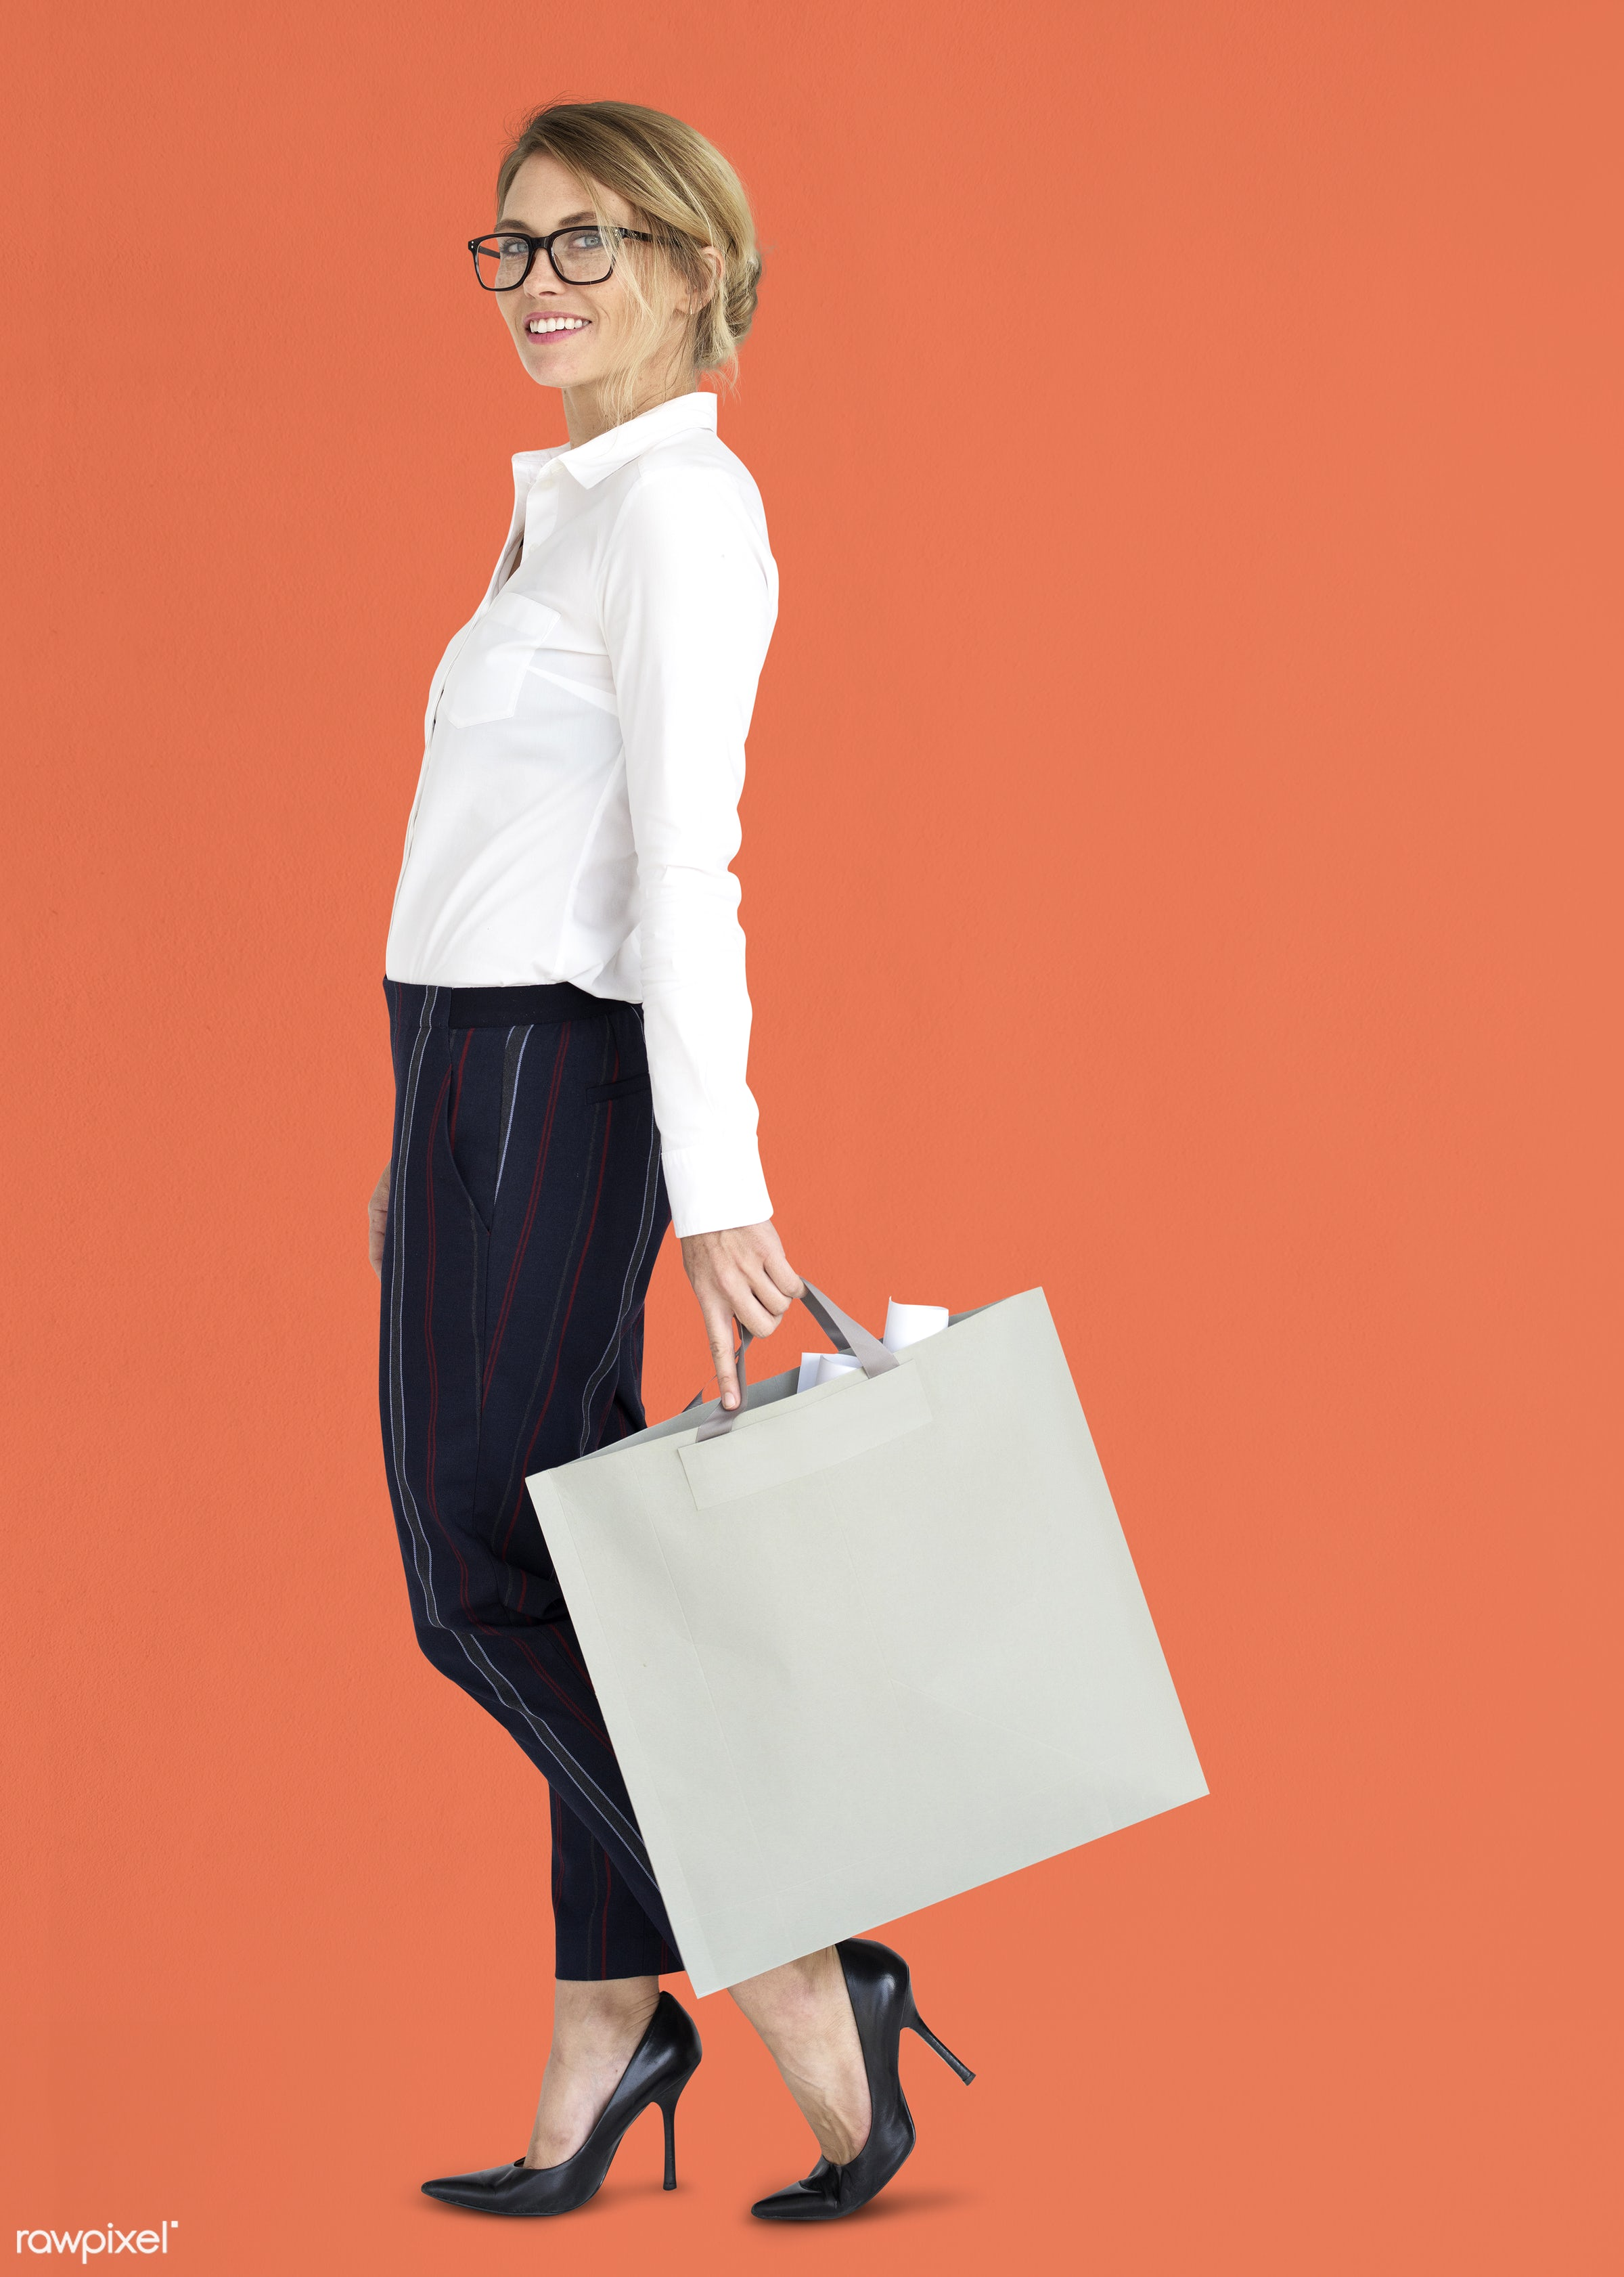 studio, expression, person, people, woman, smile, cheerful, smiling, orange, isolated, bag, happiness, businesswoman,...